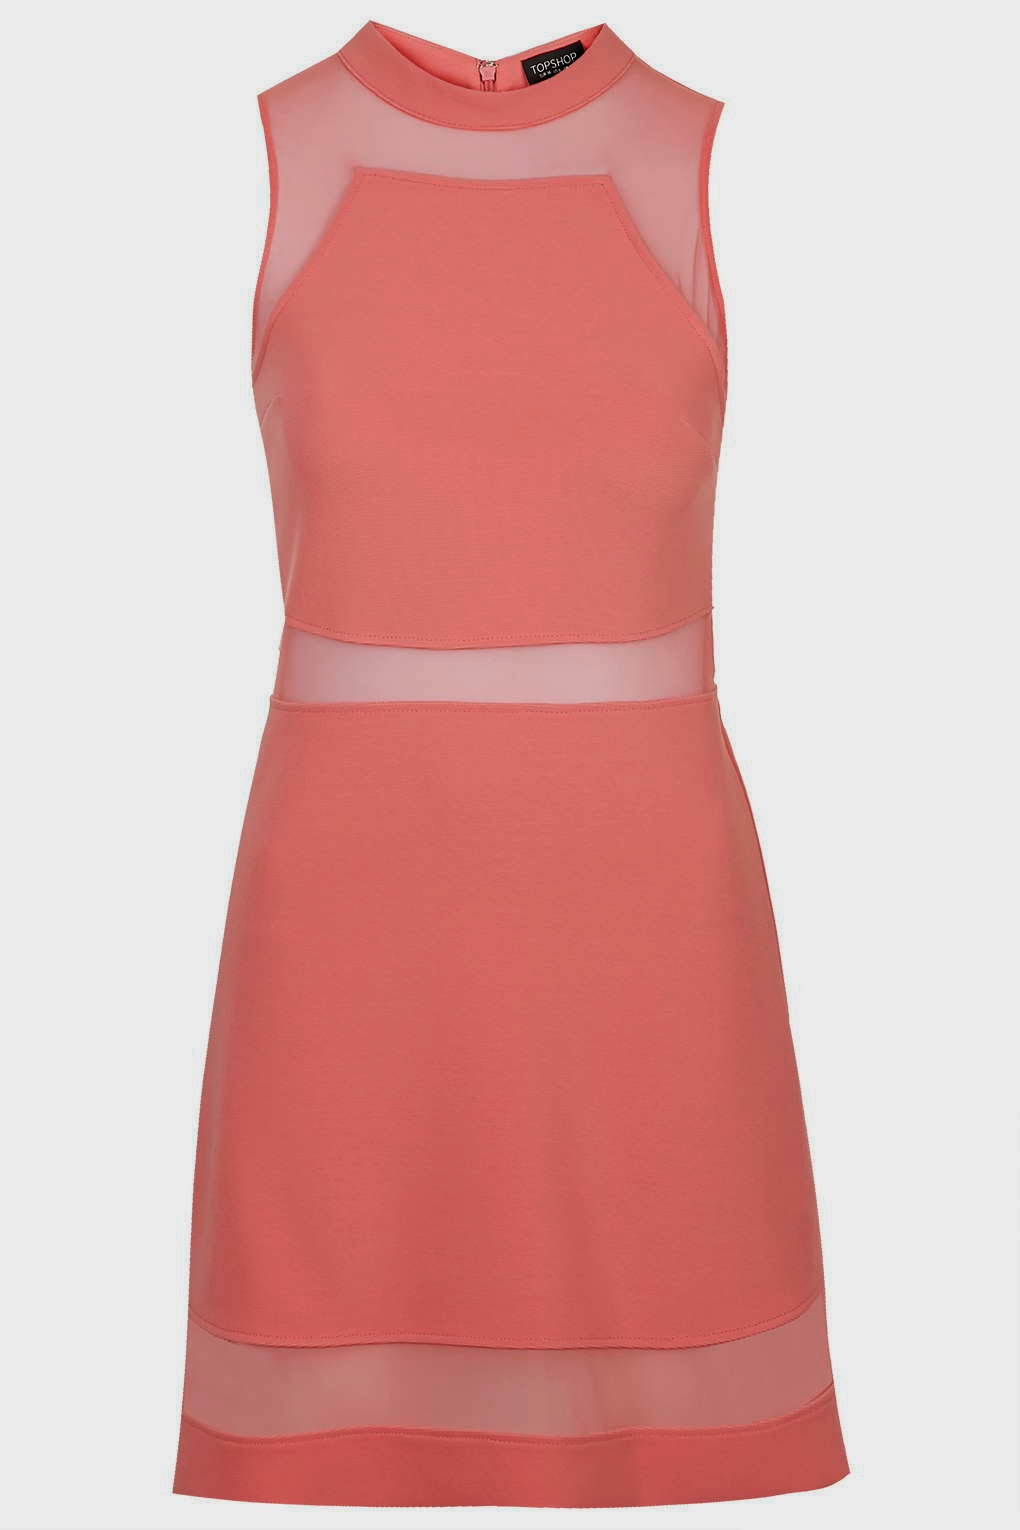 coral sundress, topshop coral dress,